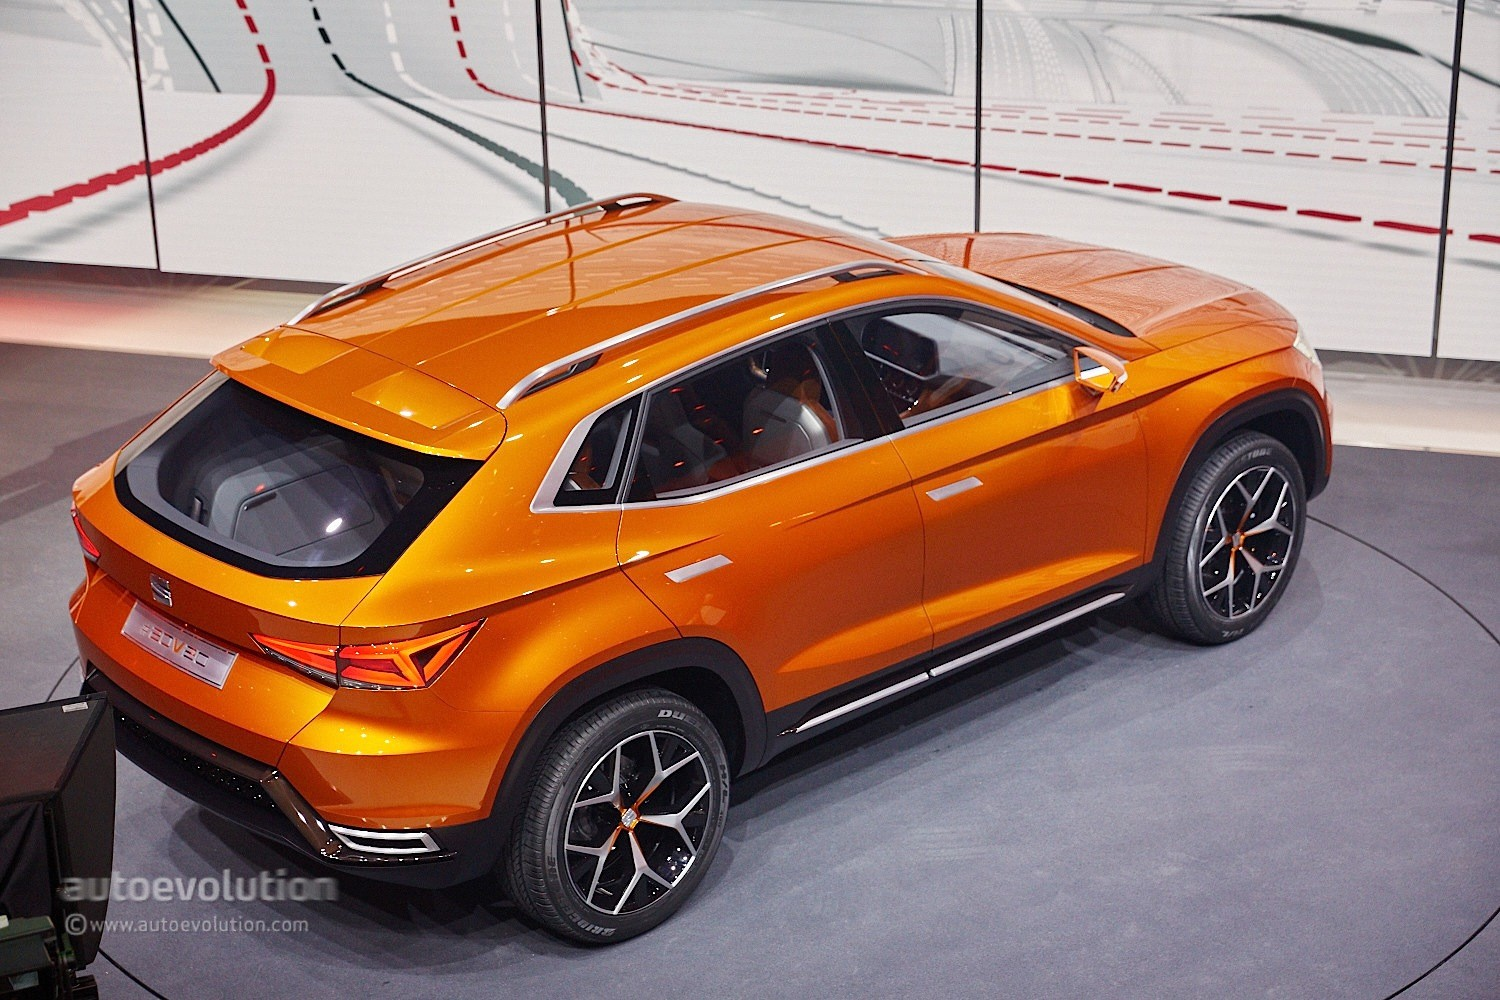 Seat Suv 2018 >> 2020 Seat Suv Coupe Reportedly Confirmed For Production